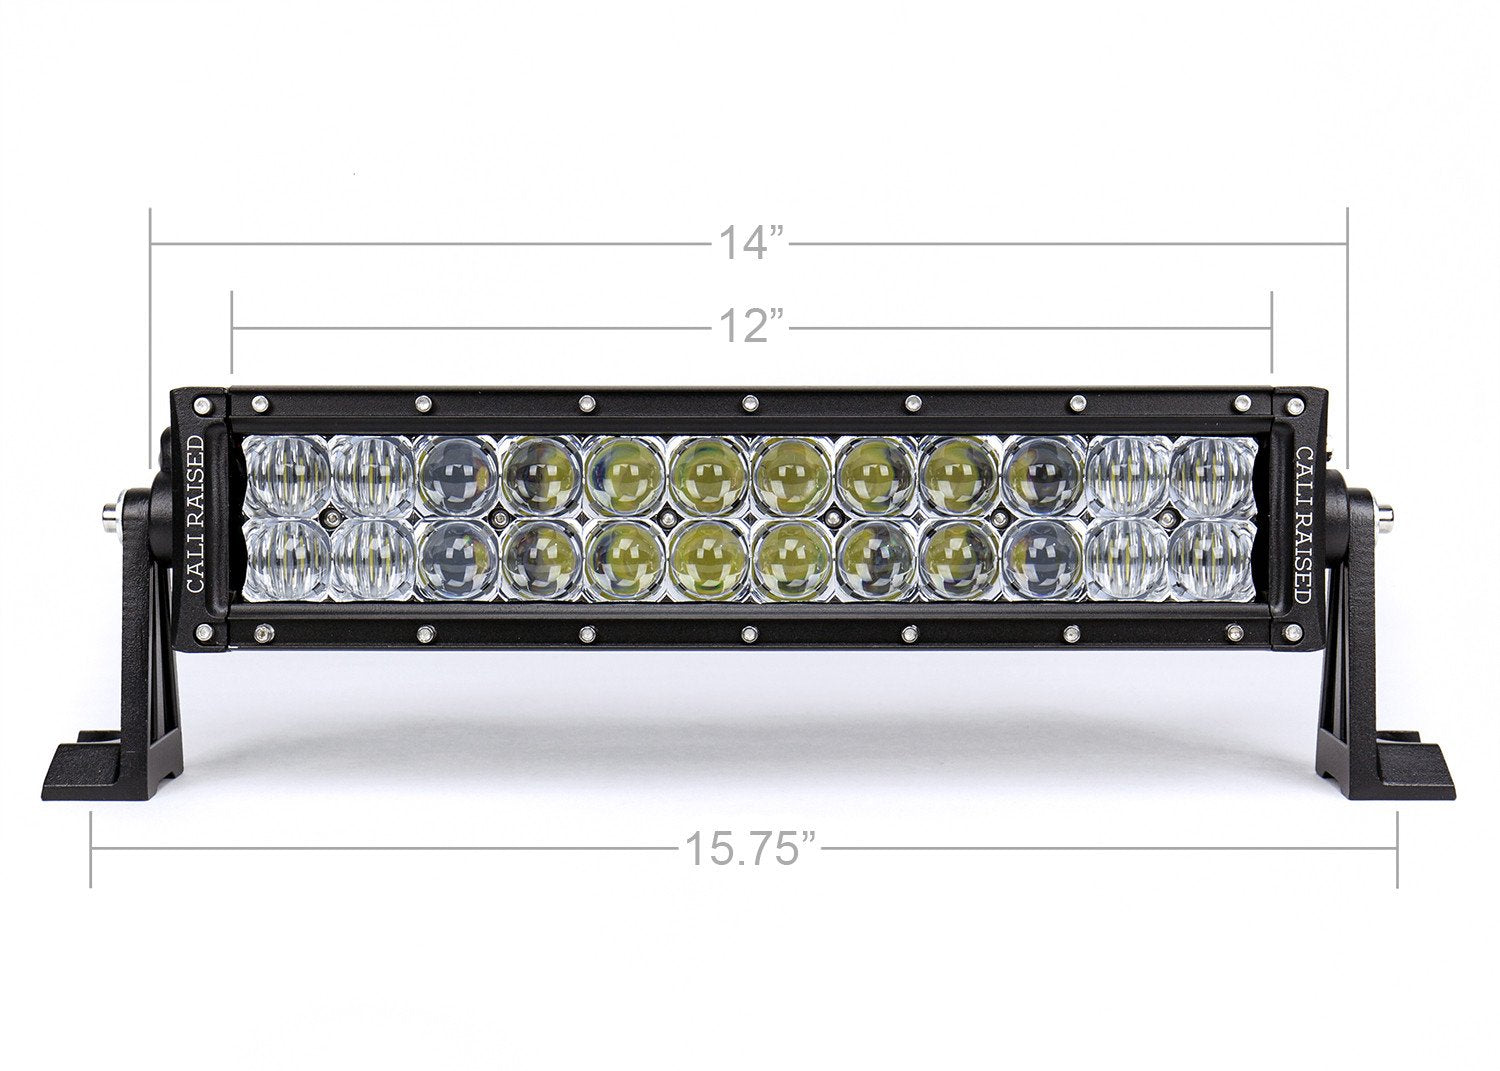 "14"" DUAL ROW 5D OPTIC OSRAM LED BAR - 4x4 Runners"